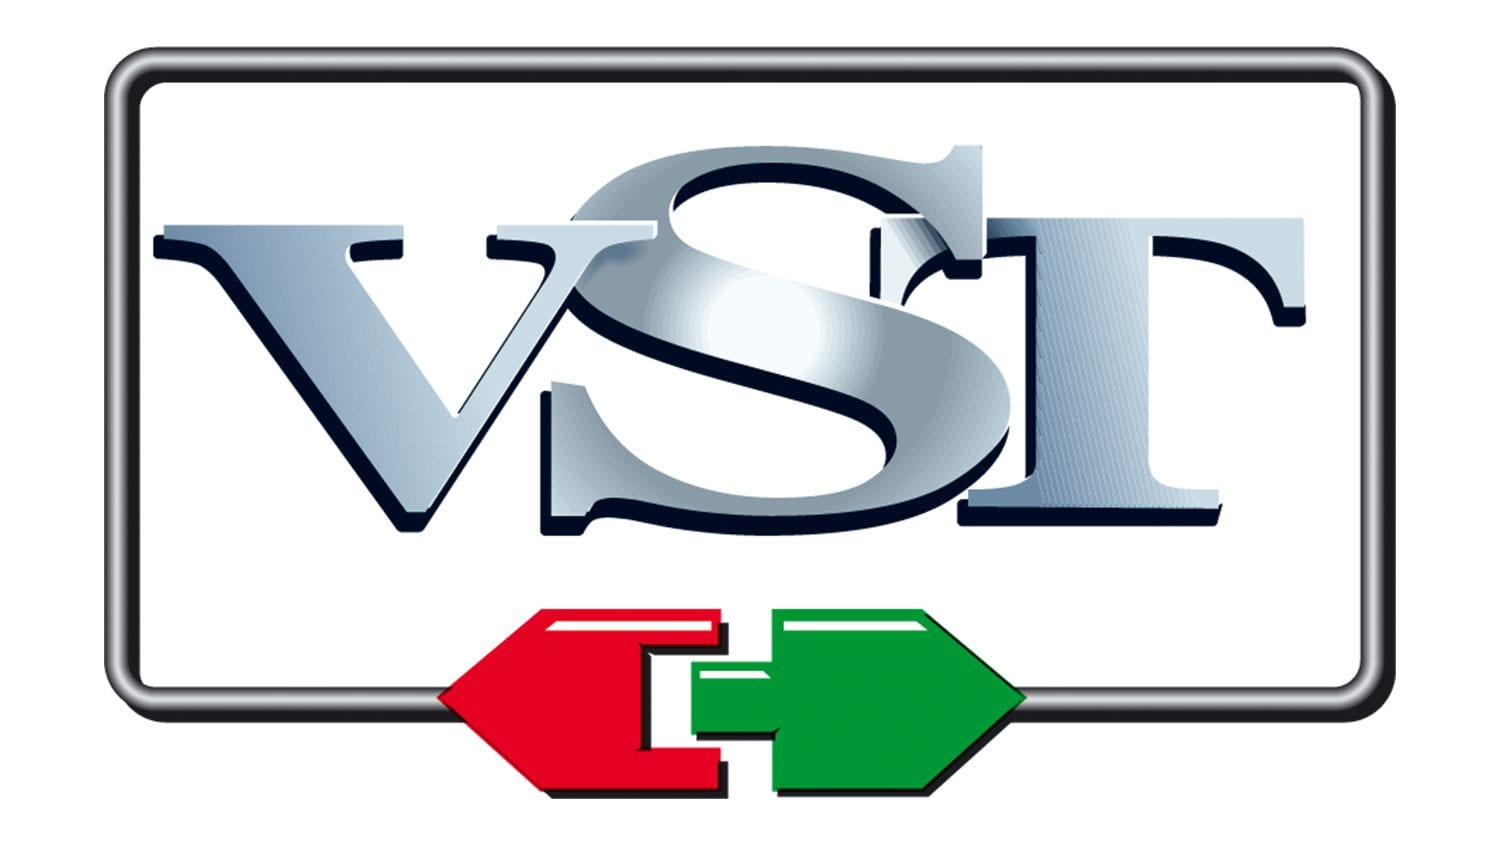 vst plugin logo